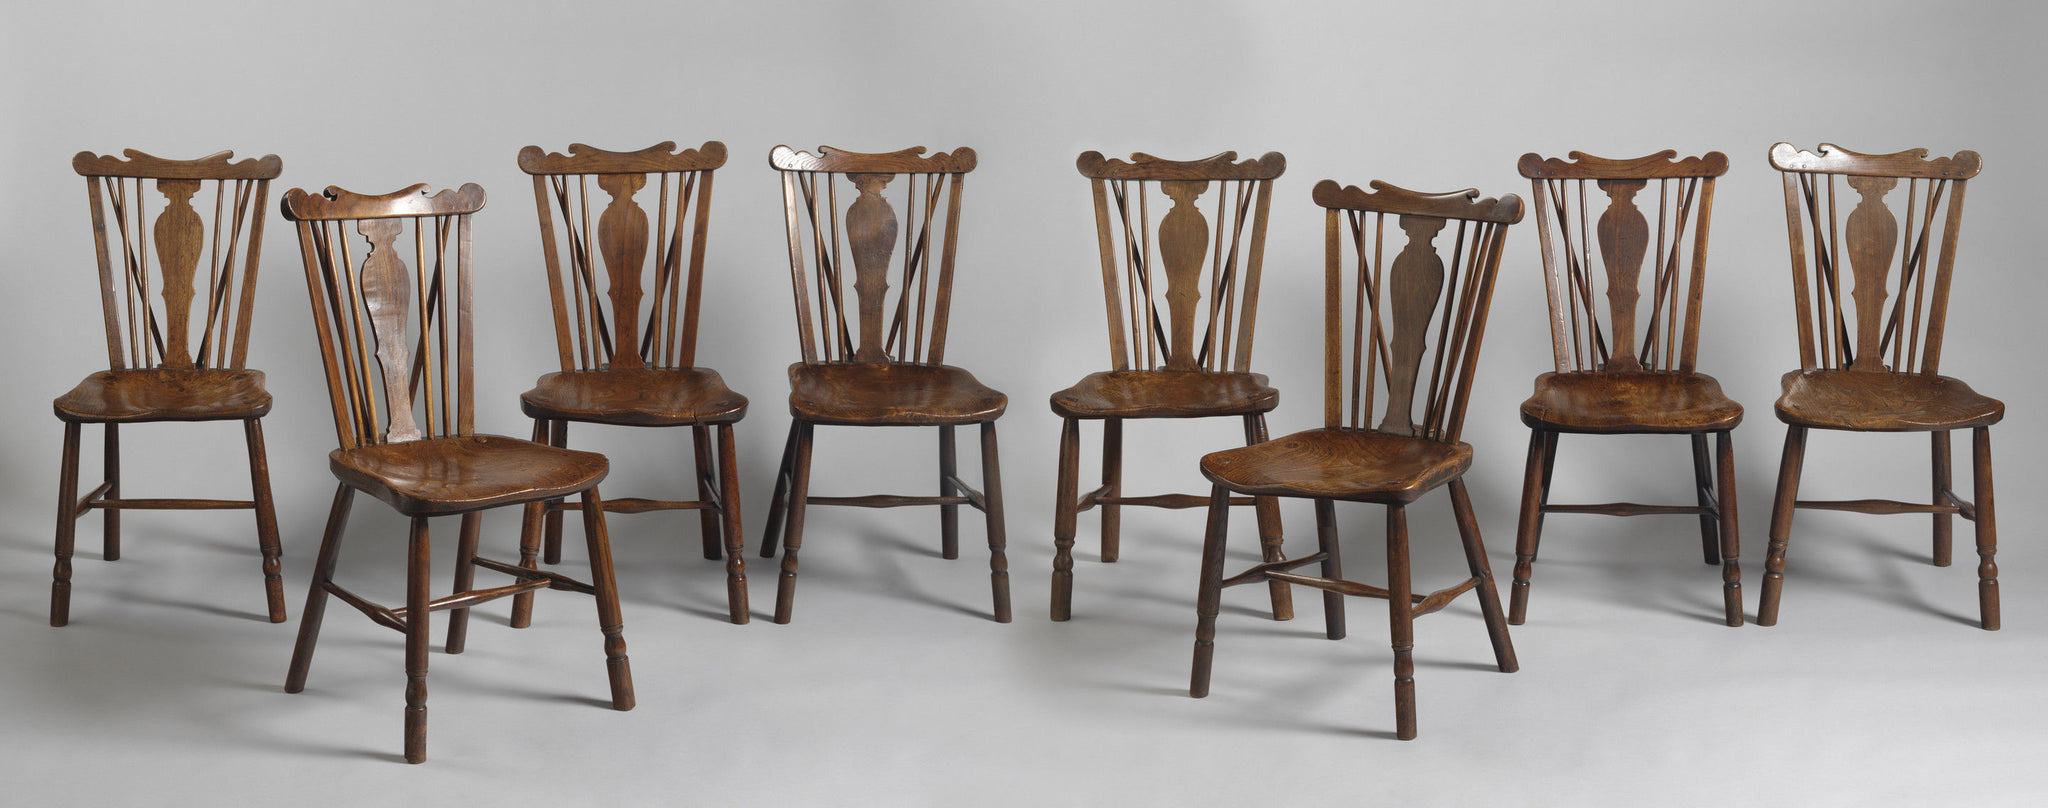 A Fine Matched Set of Eight Comb Back Windsor Dining Chairs